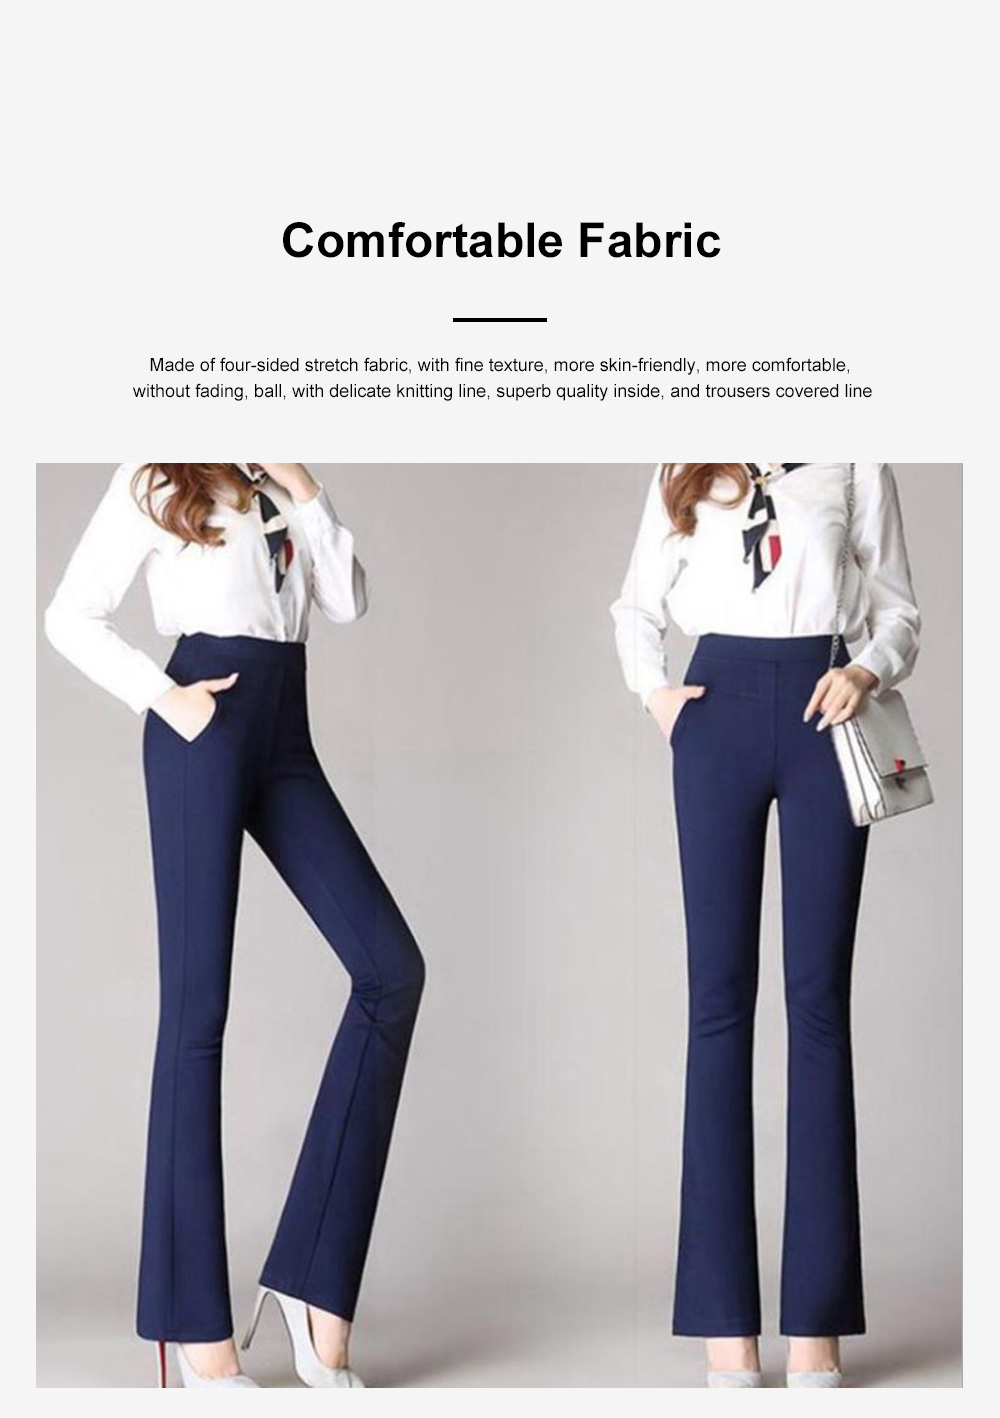 Plus Size Pants Female Casual Long Pants Ladies Office Trousers High Waist Slimming Black Straight Customized Stretch Big Size Slacks 5